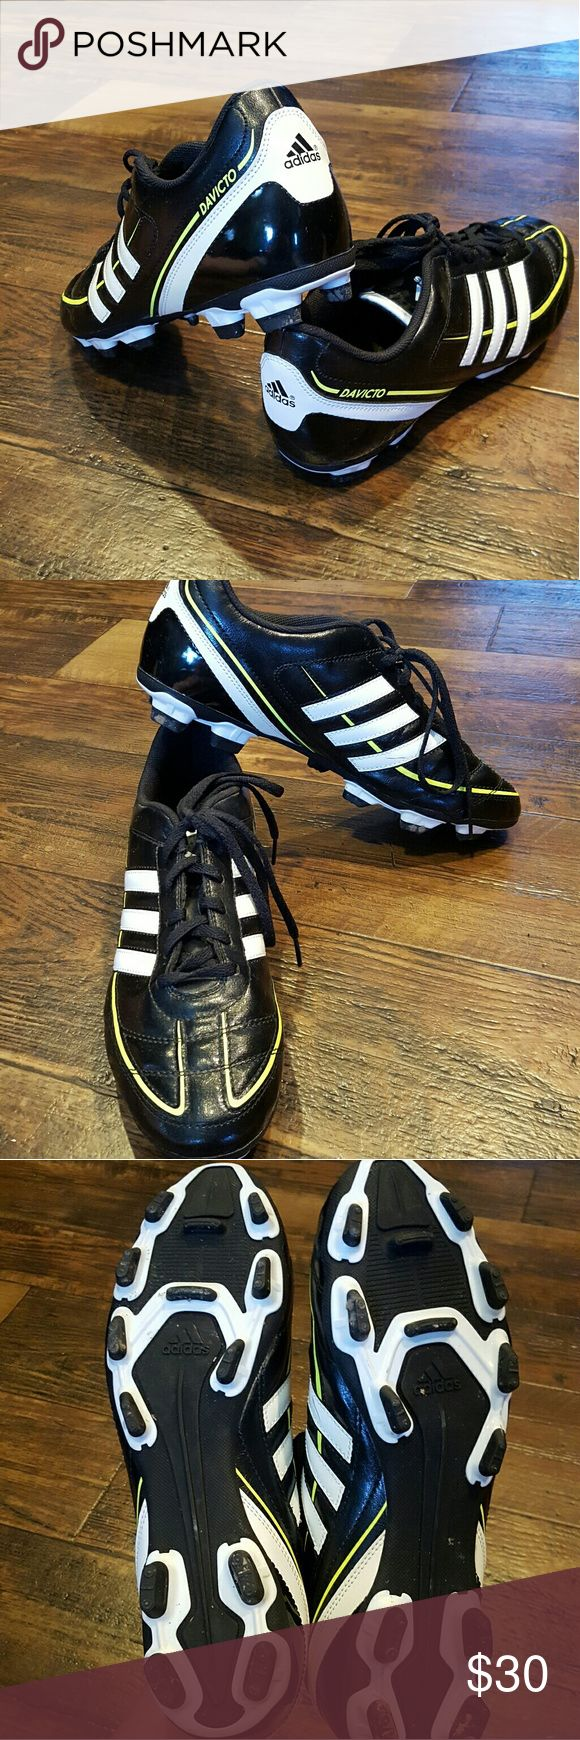 Adidas men's running shoe, like new Adidas running shoe, like new, worn a few times, very nice! Adidas  Shoes Athletic Shoes